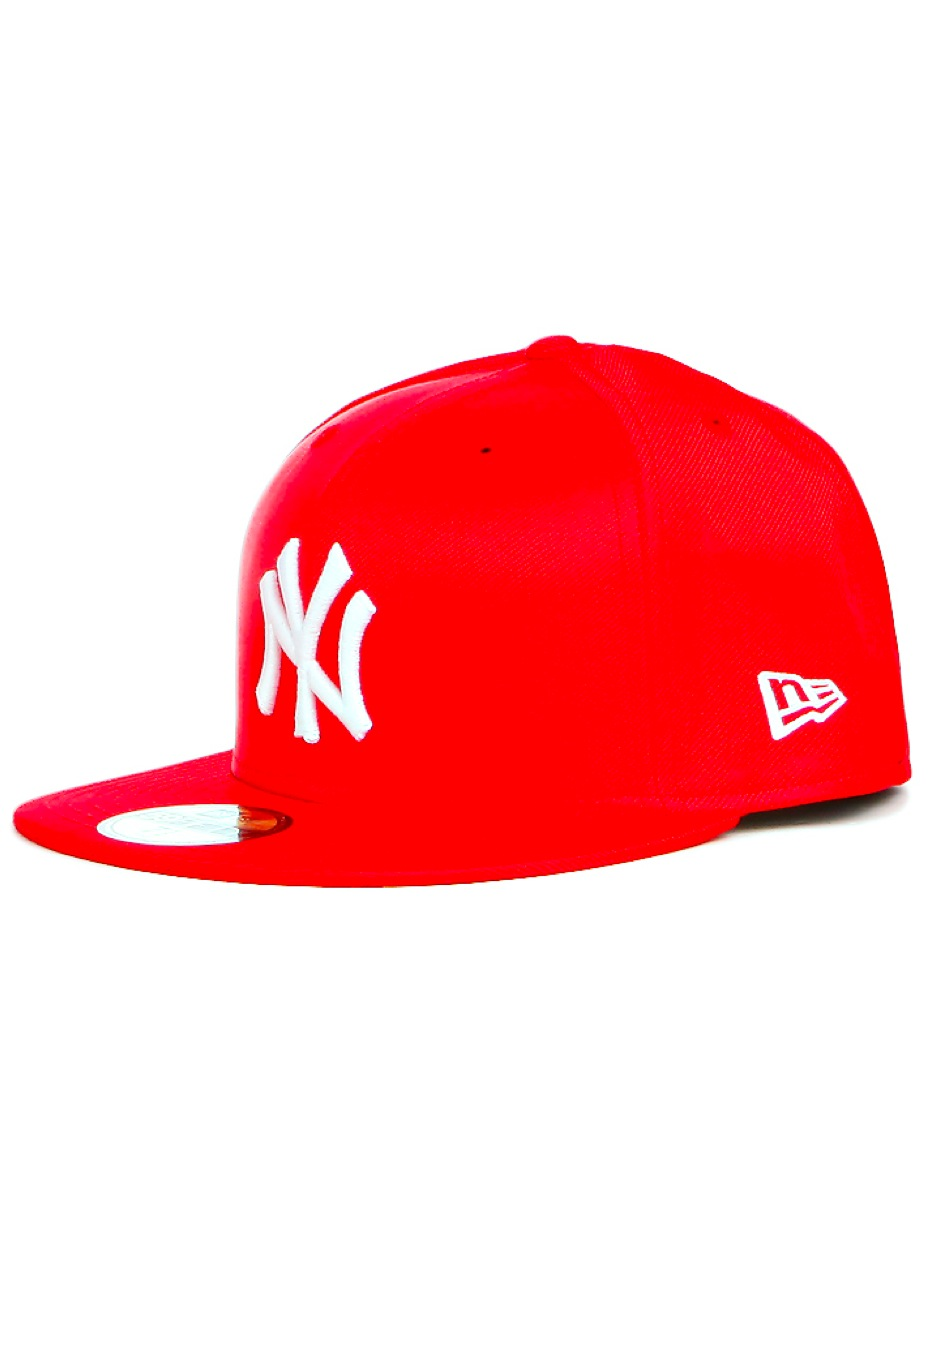 New Era - Straight Across New York Yankees Scarlet White - Cap - Streetwear  Shop - Impericon.com Worldwide c0a5a4a8e70